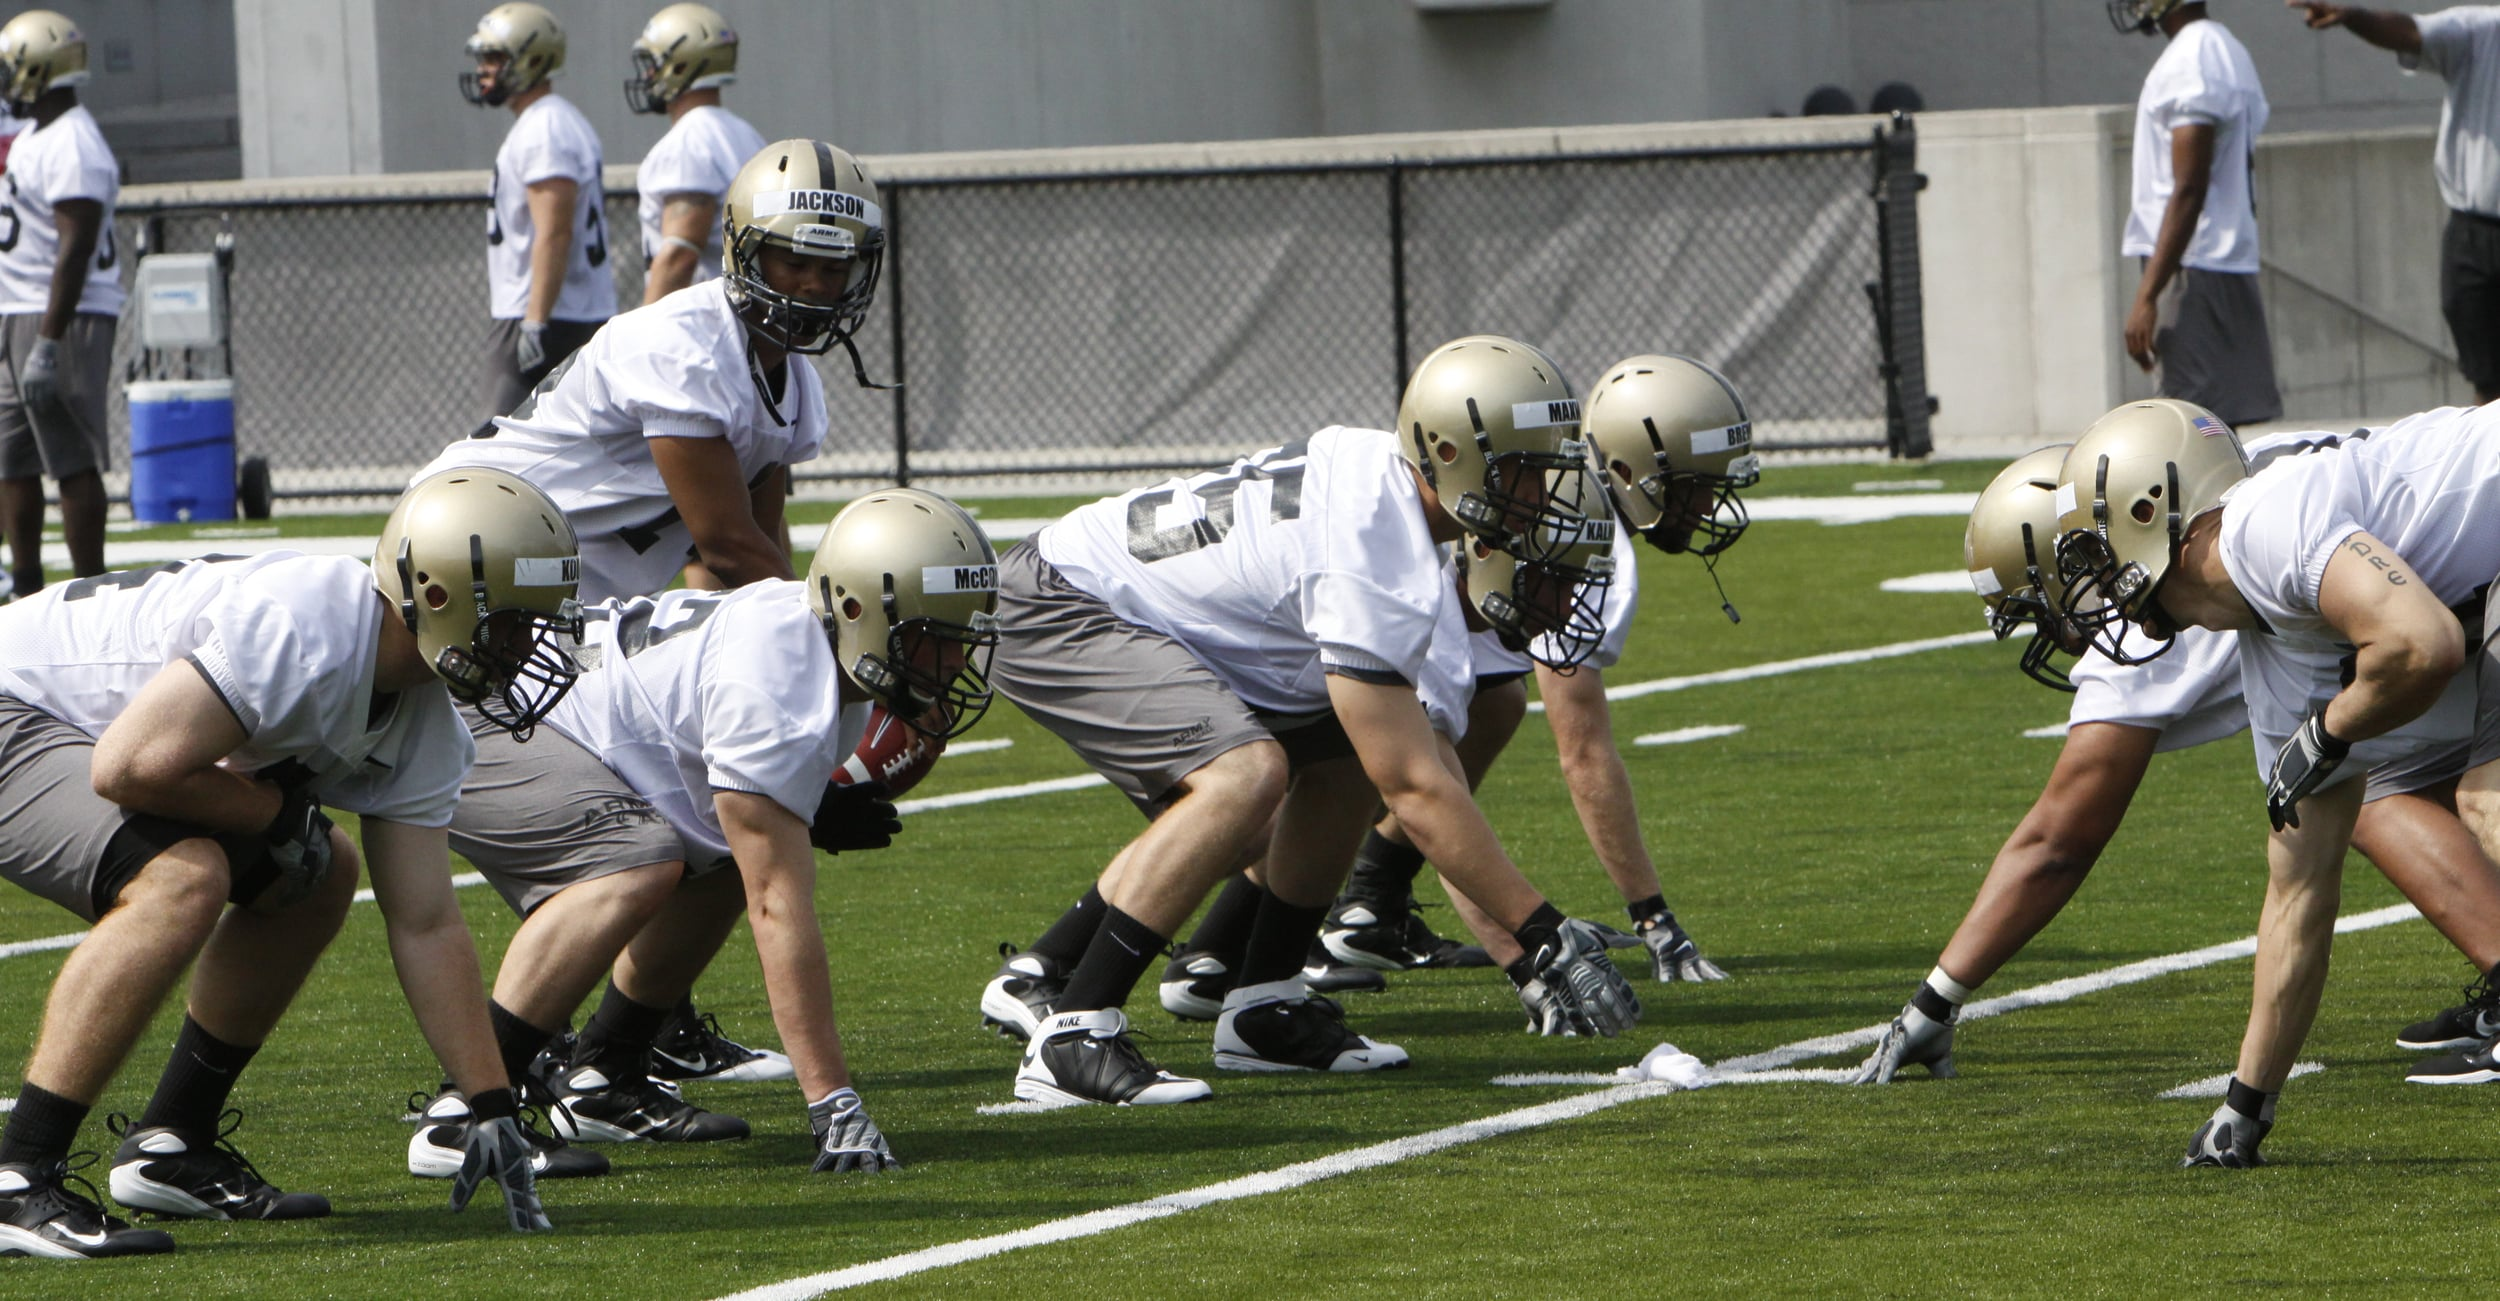 """ Army Football Training Camp "" by  West Point - The U.S. Military Academy   (CC BY 2.0)"